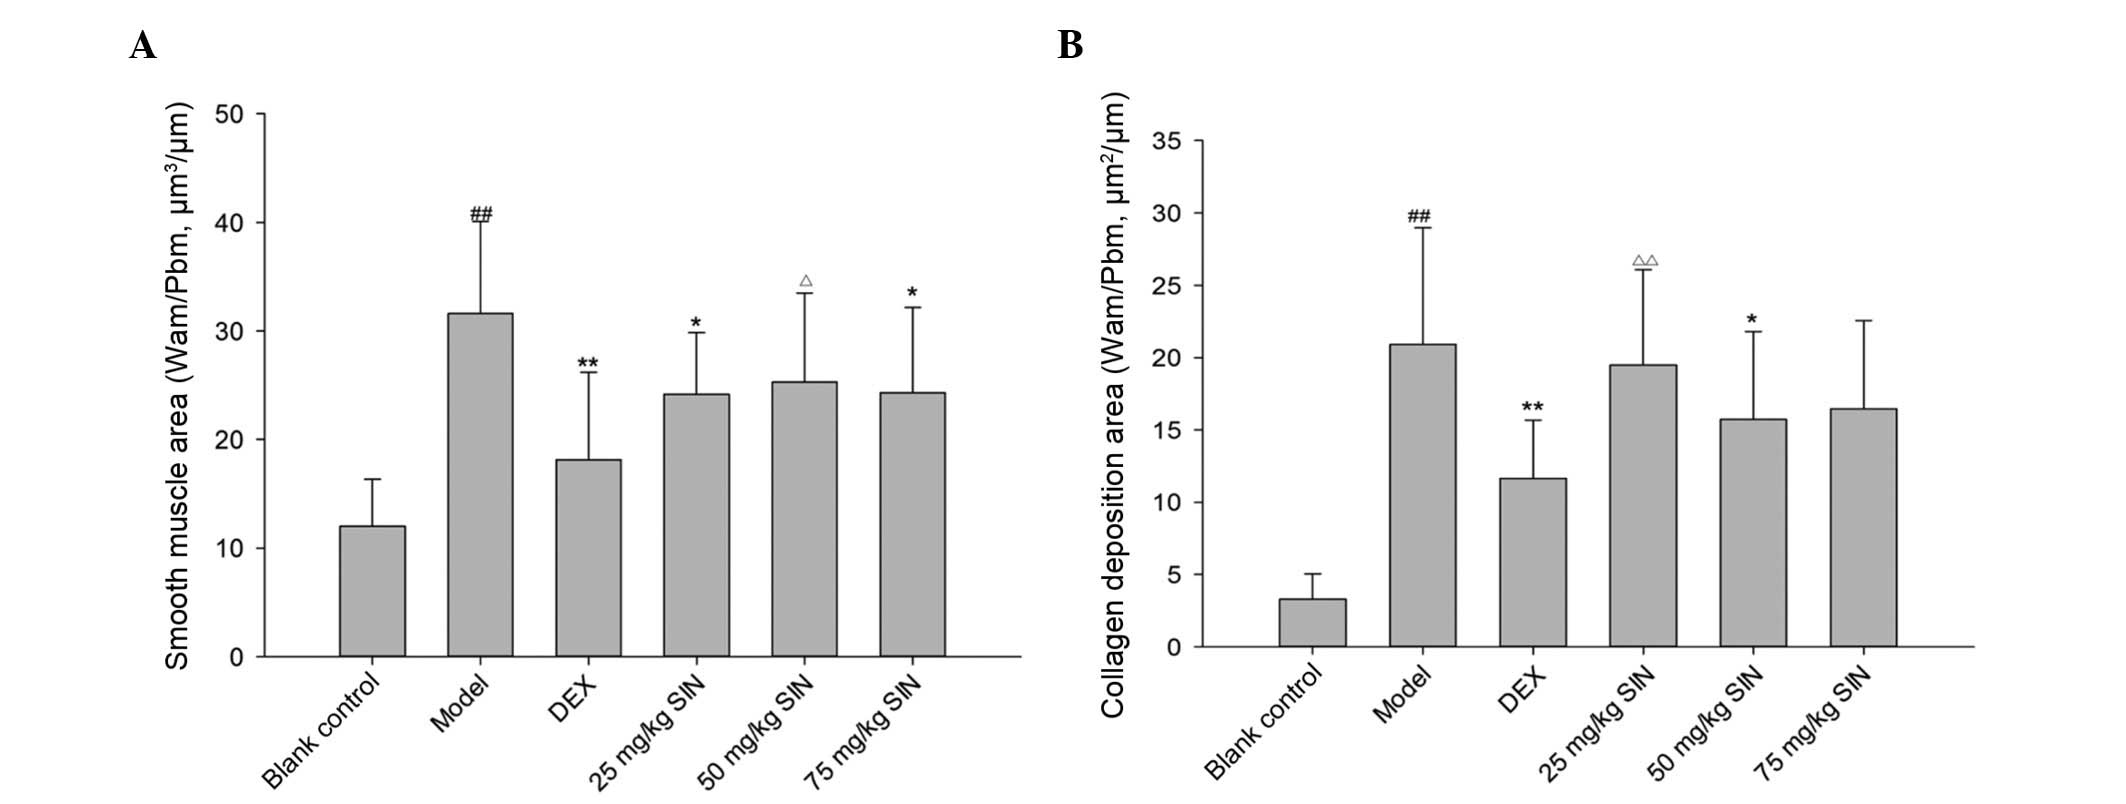 sinomenine attenuates airway inflammation and remodeling in a mouse